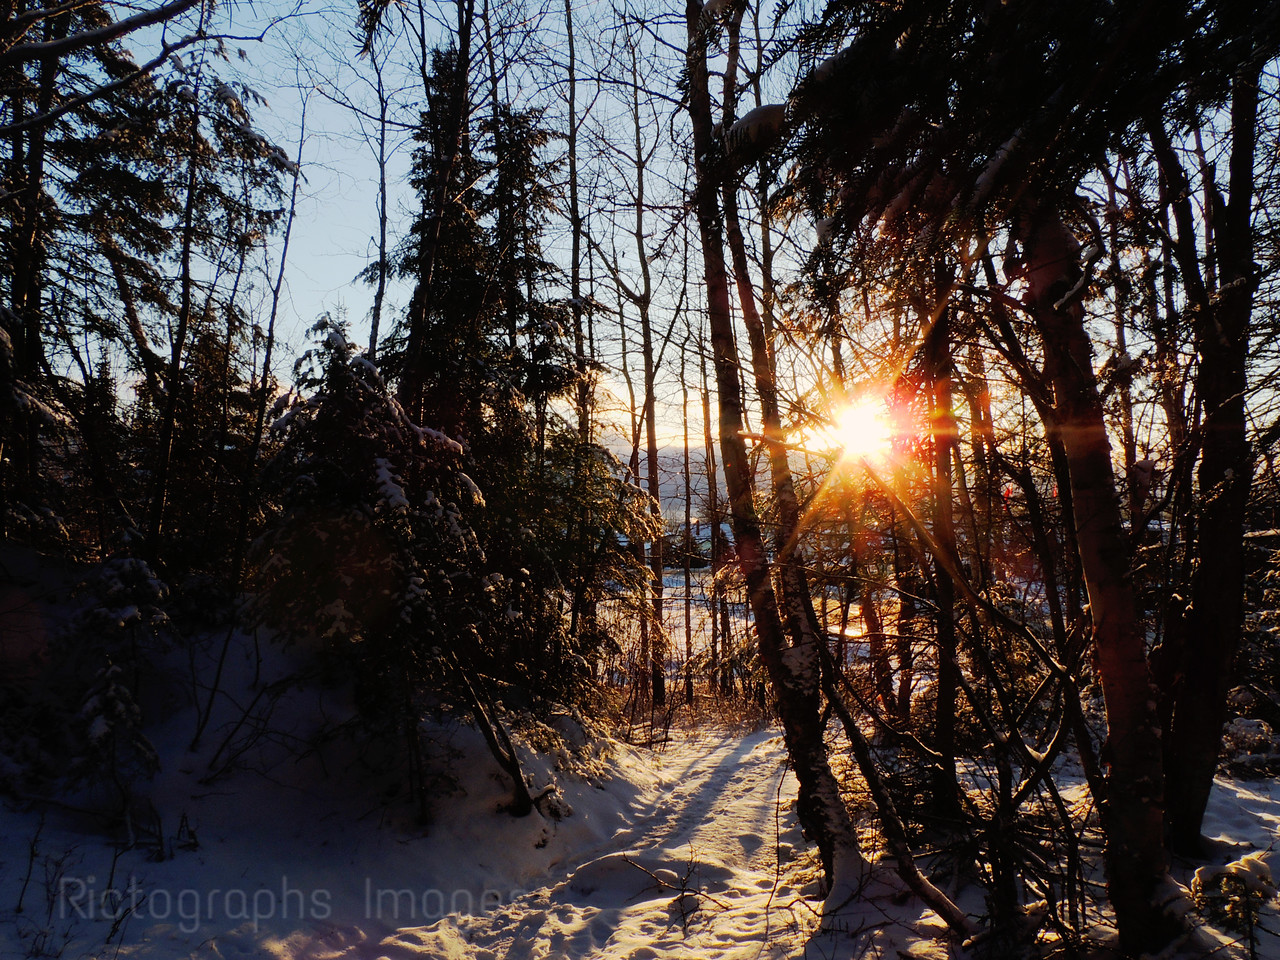 Trees In The Boreal Forest, Winter 2016